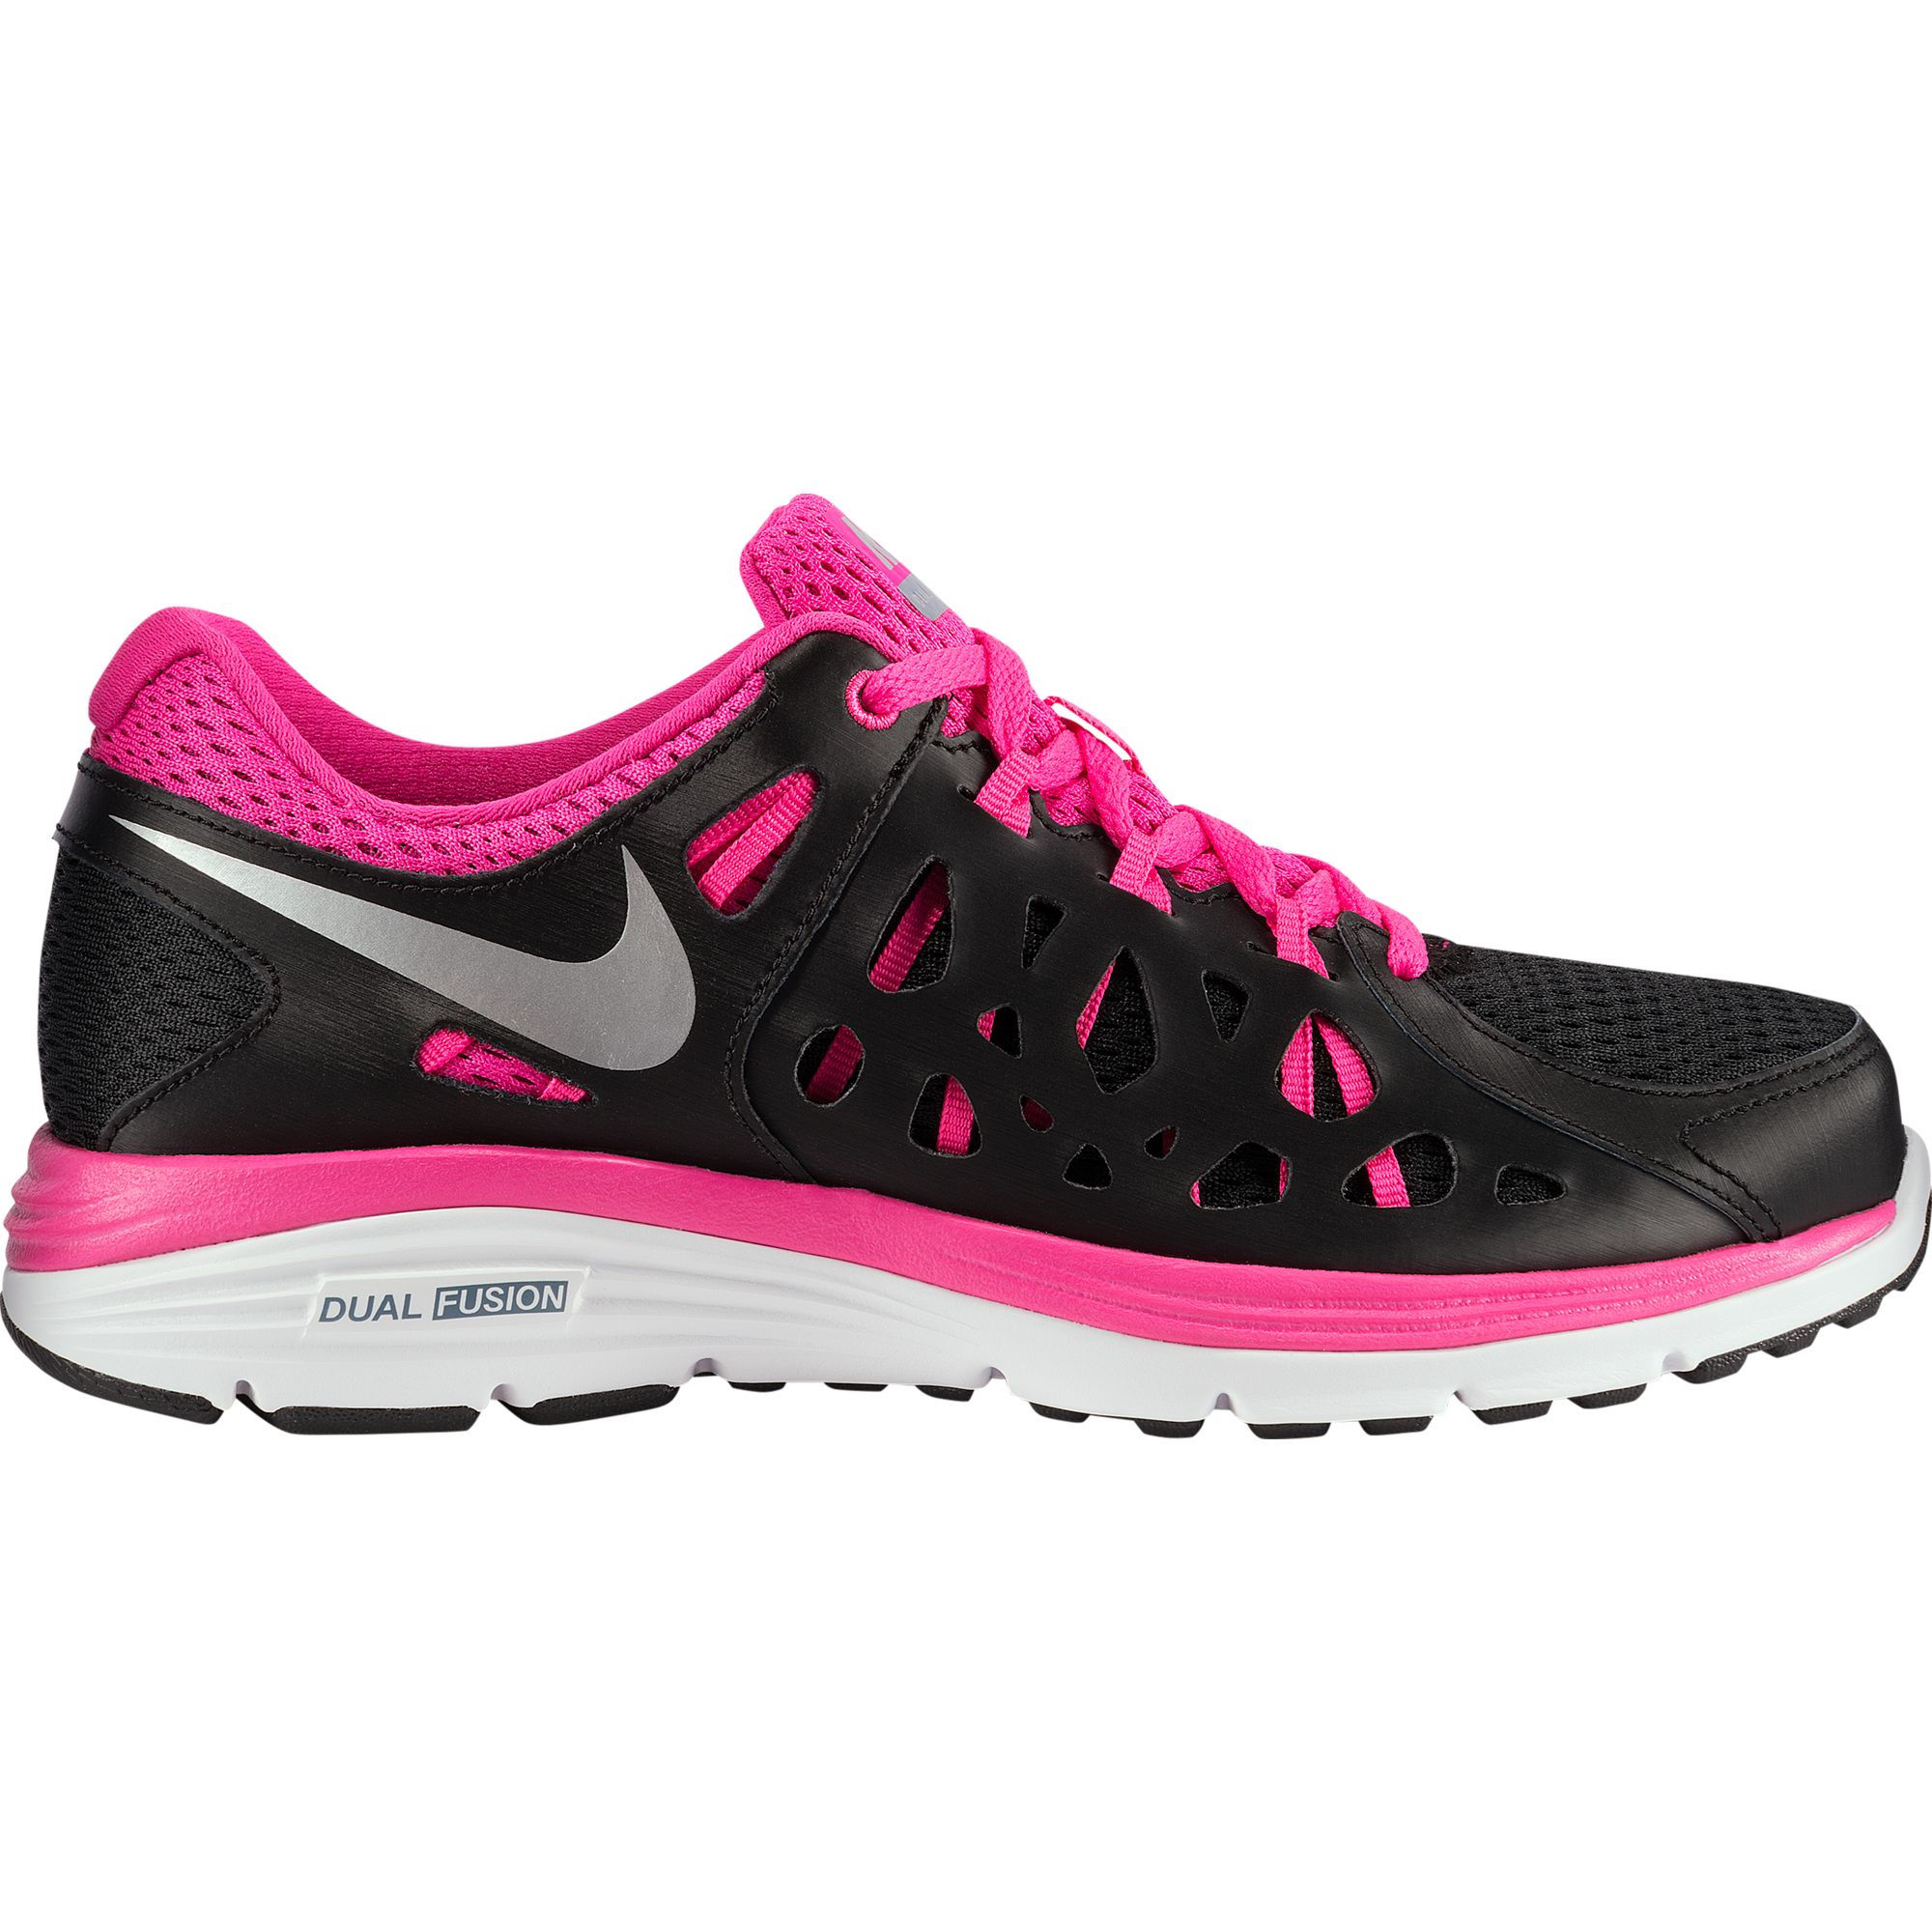 Dual Fusion Ladies Running Shoes